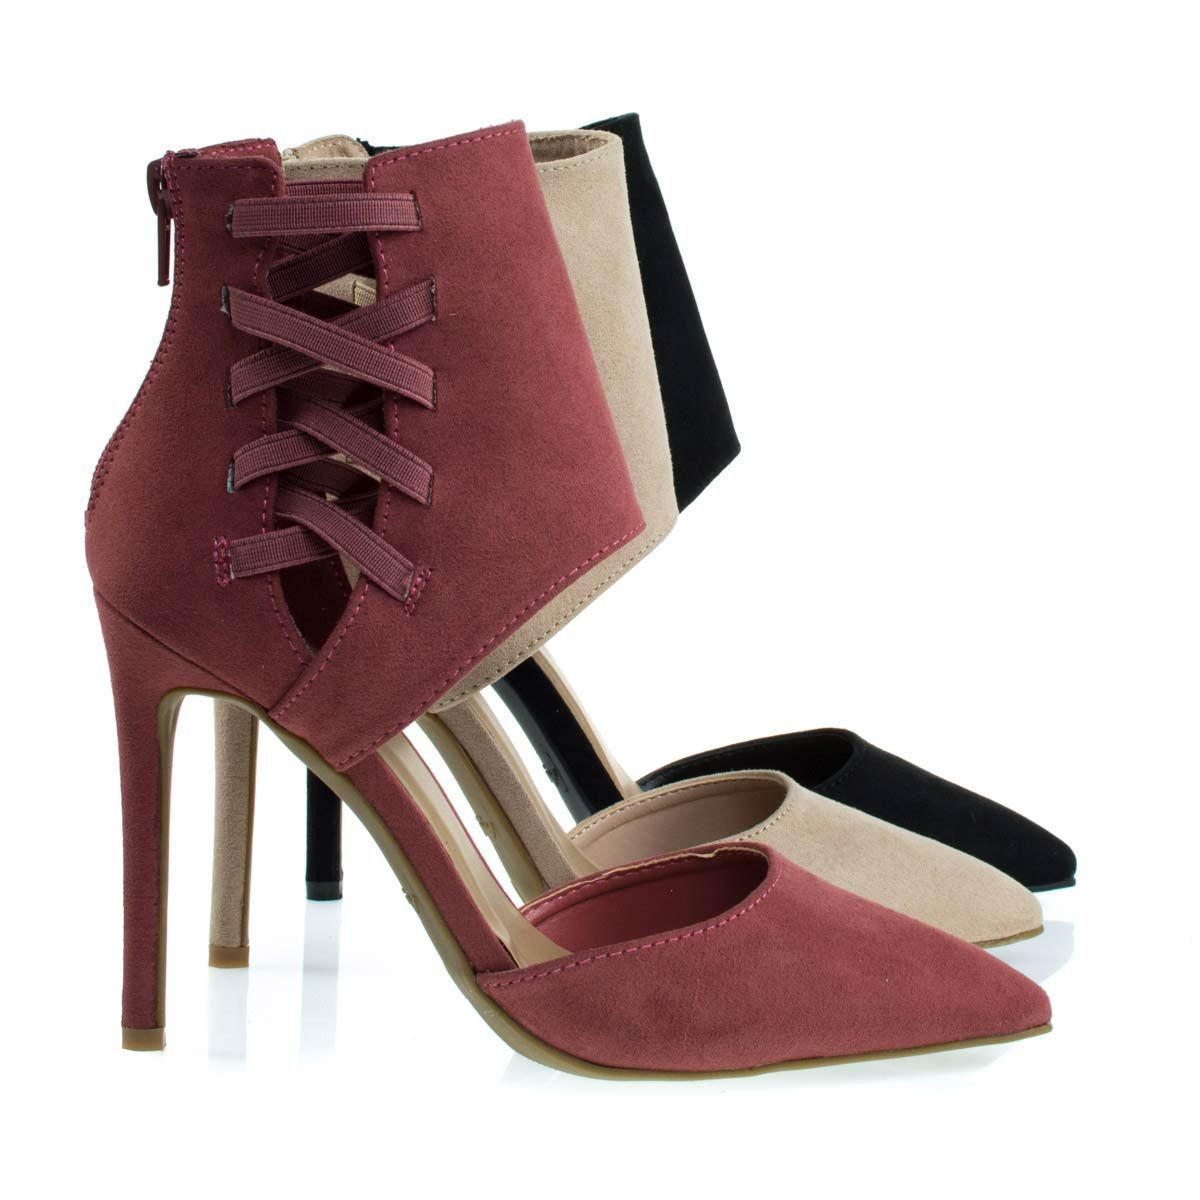 Worship37s Dk Mauve by Anne Michelle, Pointed Toe Dress Pump w Ankle Height Cuff w Elastic Strap D'Orsay Cut